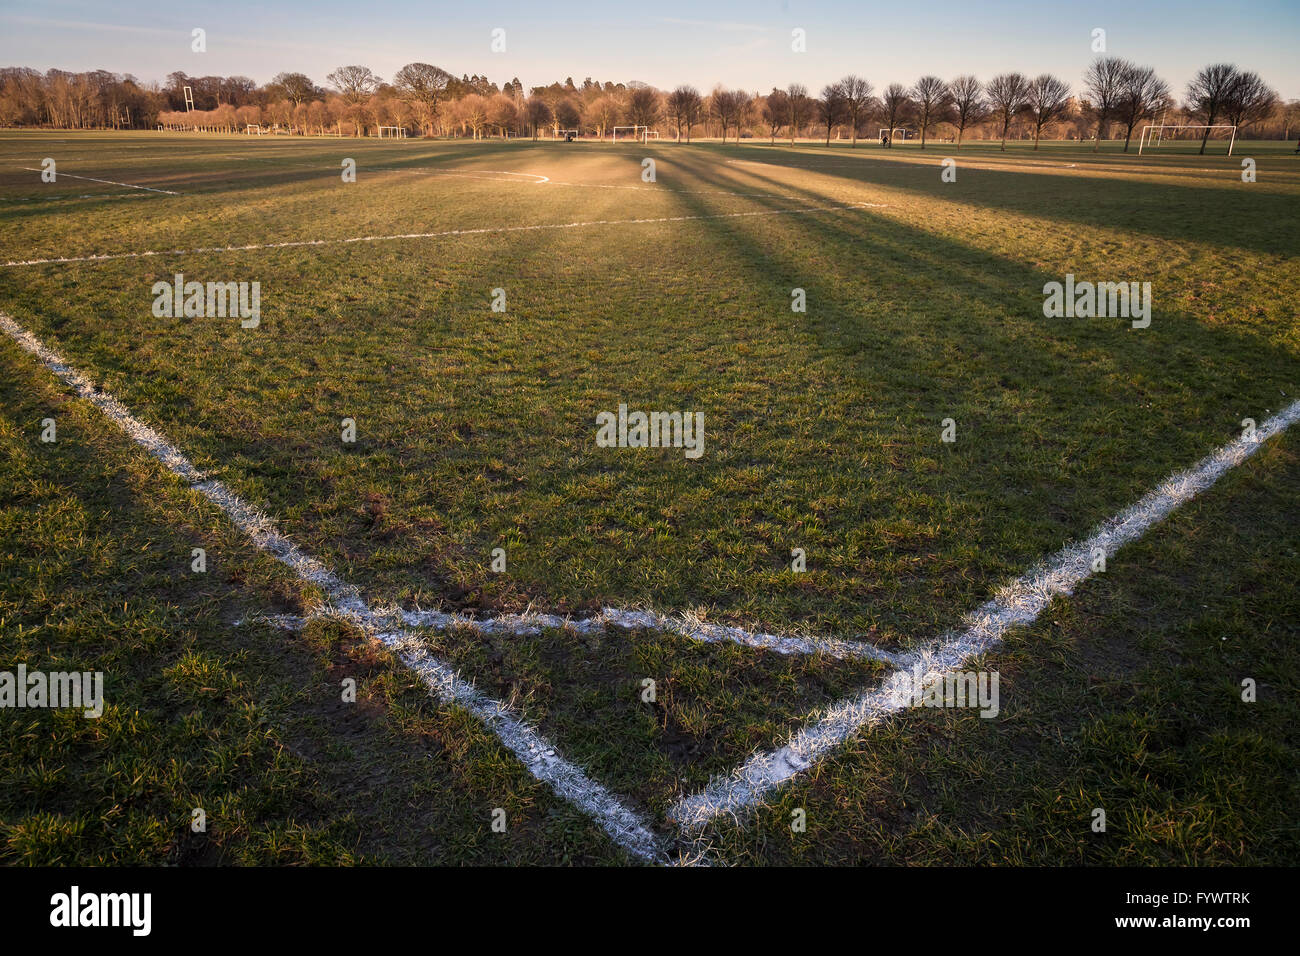 Sunset and shadows over a football pitch in Cardiff, UK Stock Photo